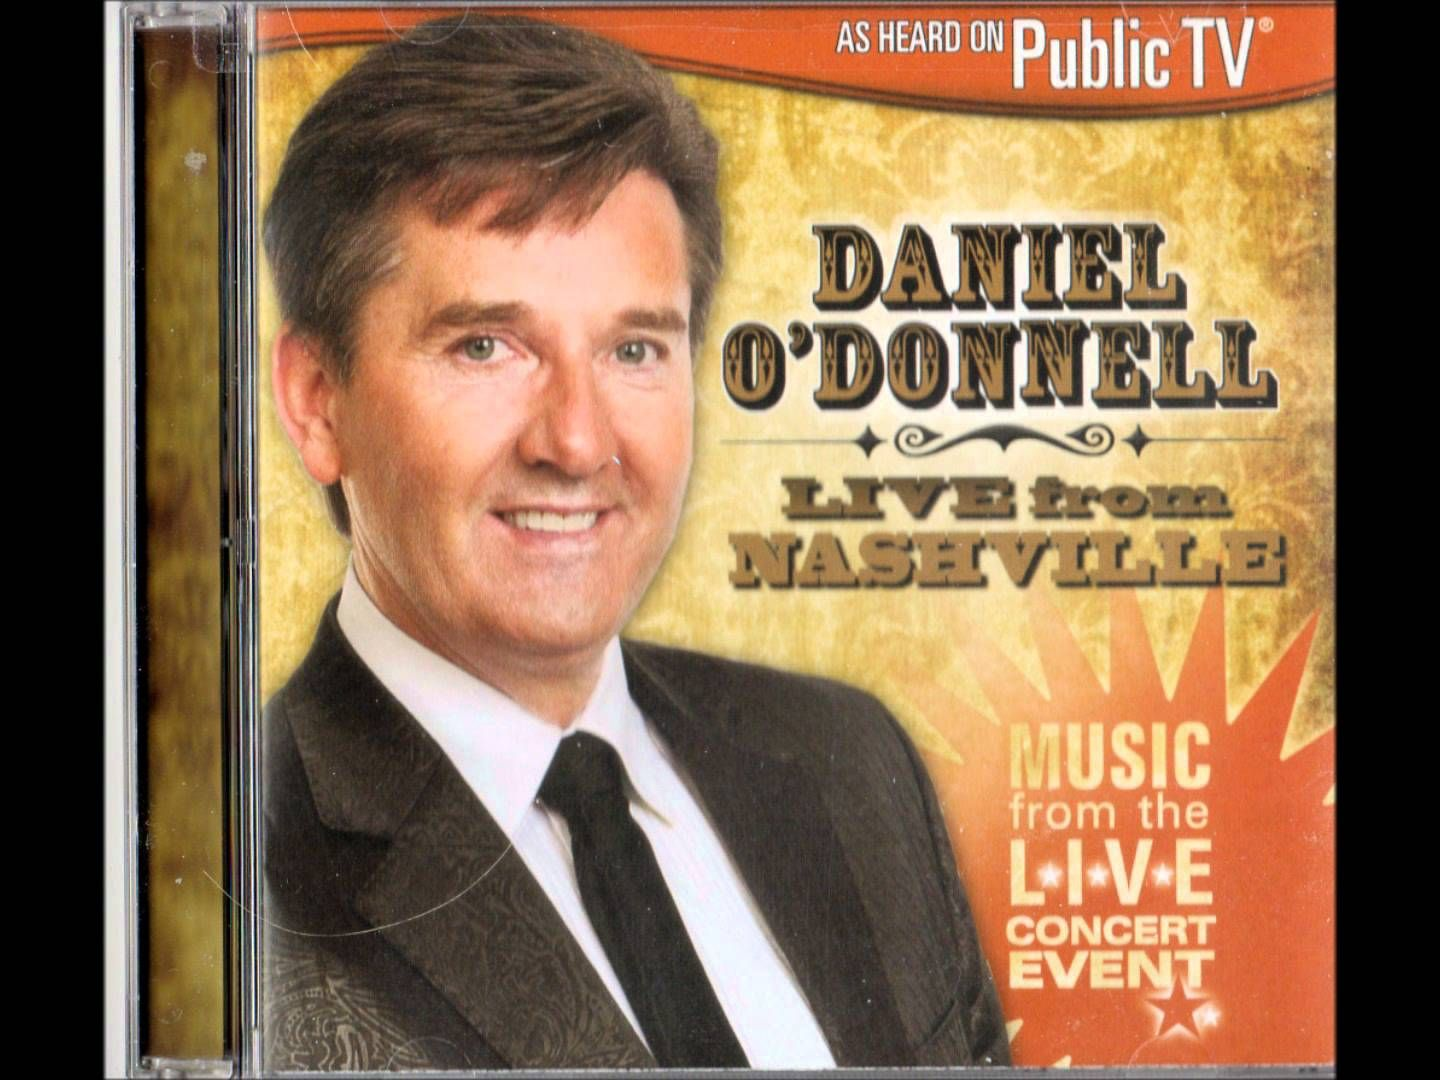 Daniel odonnell charley pride crystal chandeliers daniel o daniel odonnell charley pride crystal chandeliers mozeypictures Images